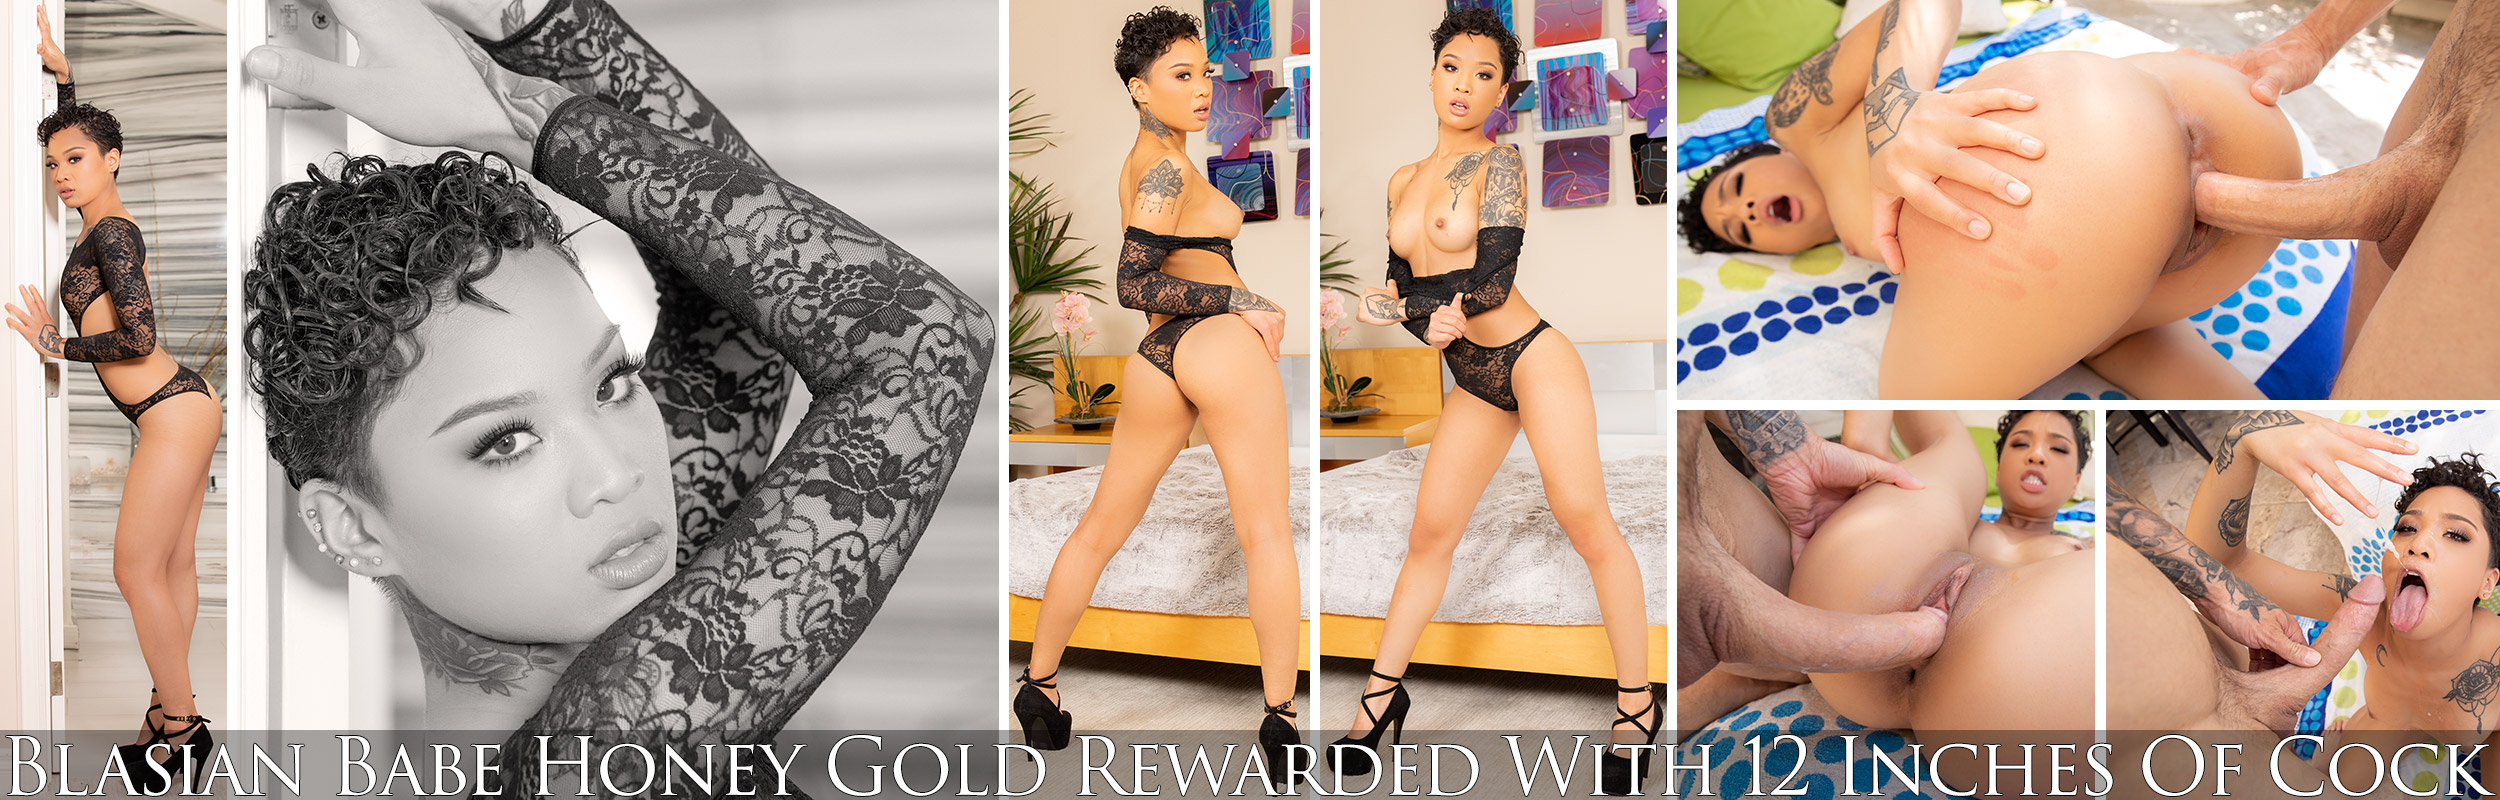 Blasian Babe Honey Gold Rewarded With 12 Inches Of Cock